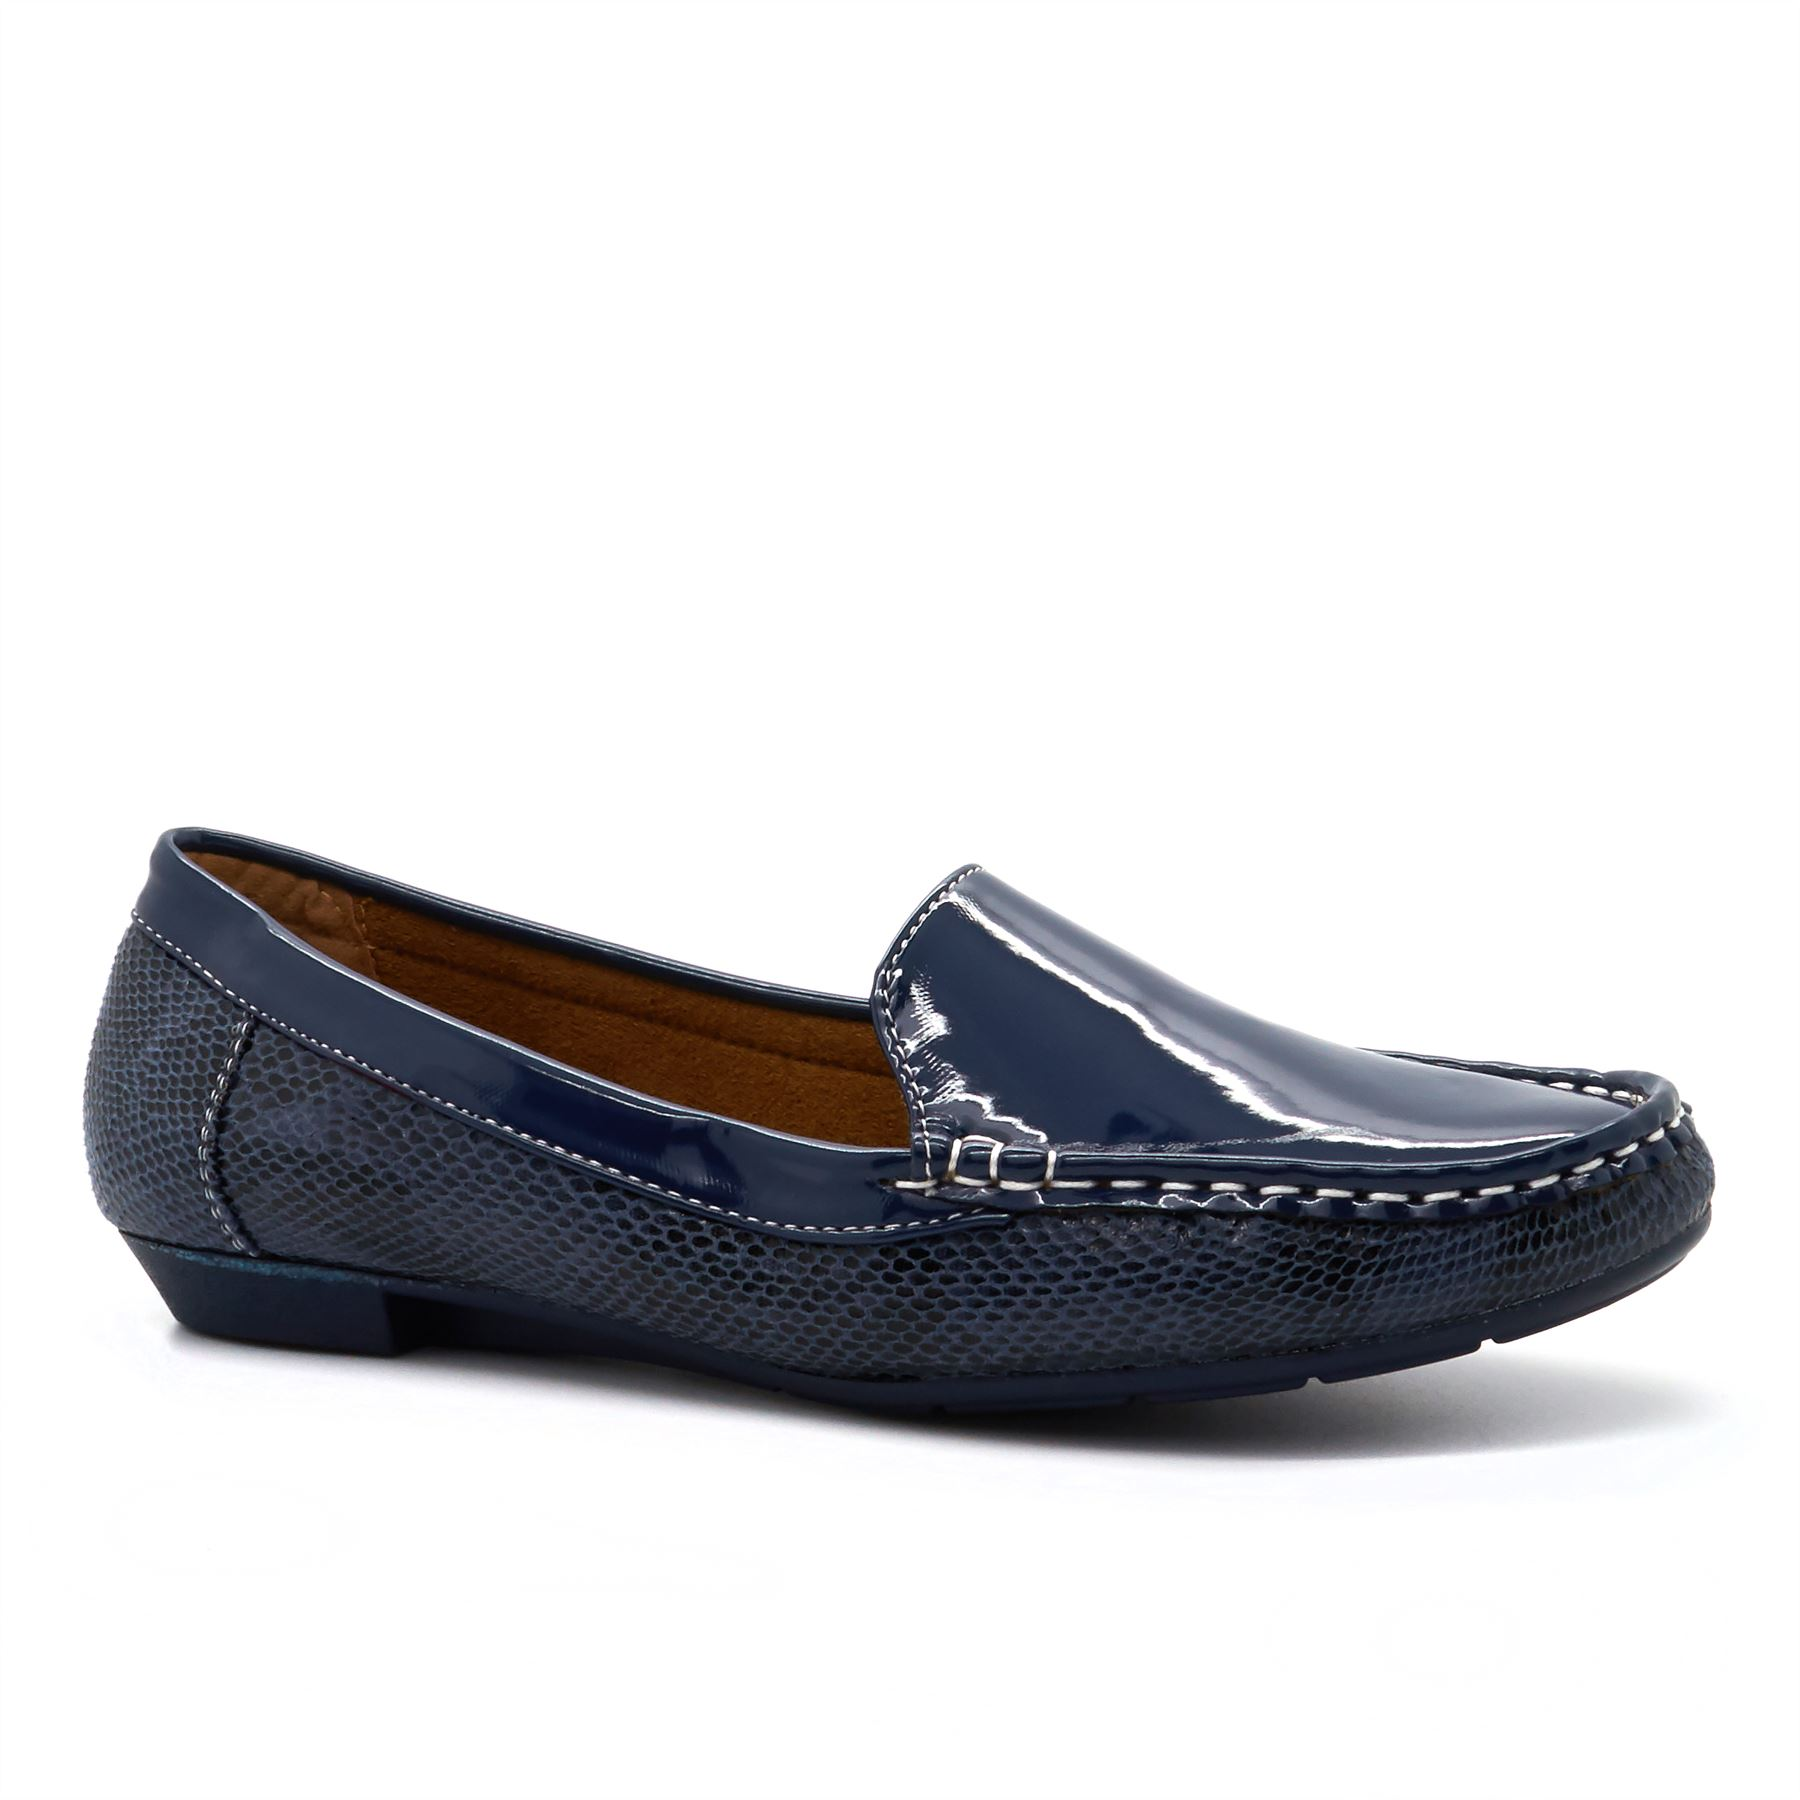 LADIES FLAT BALLERINA PUMPS 3-8 SLIP ON Mujer CASUAL COMFORT zapatos 3-8  PUMPS 7bd370 aab46b26e6